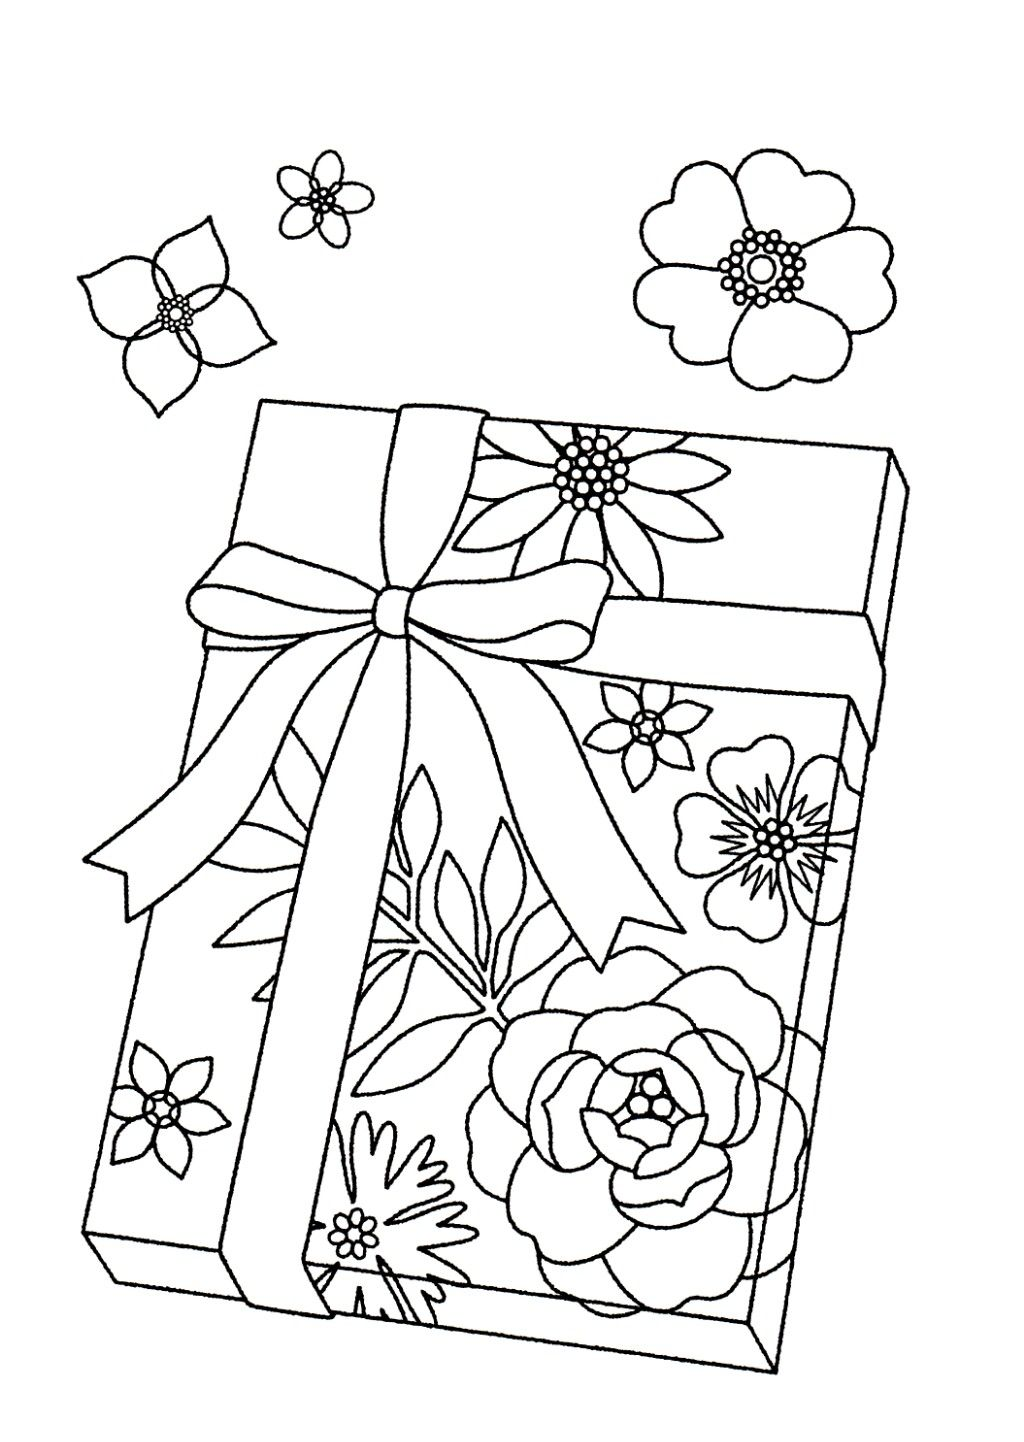 Pin by MAJA on COLORING PAGES | Pinterest | Coloring books